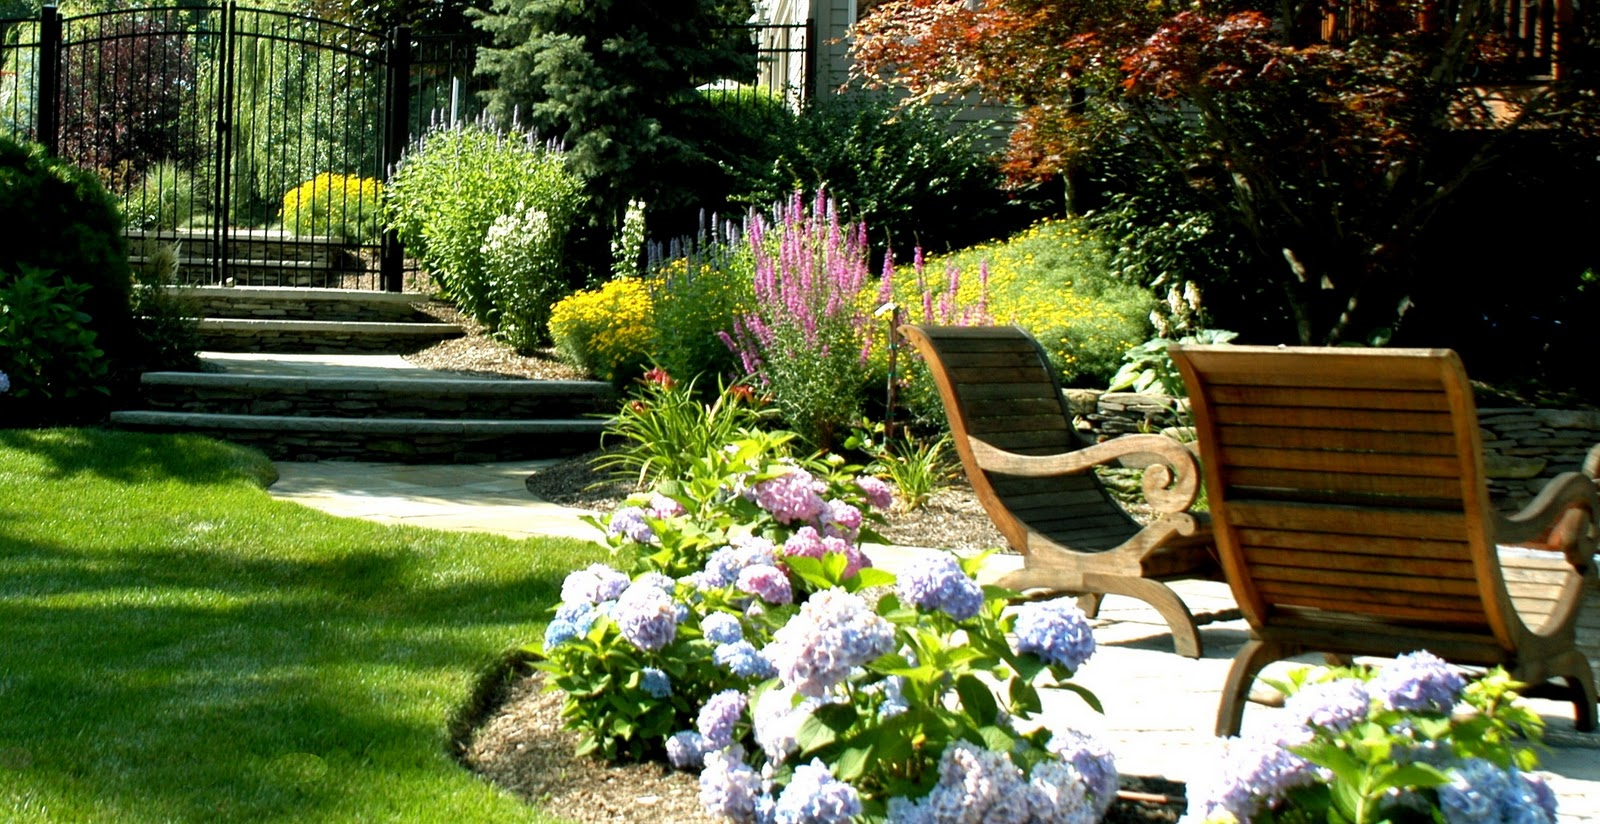 Hightechlandscapes new jersey landscape design for Home garden landscape design